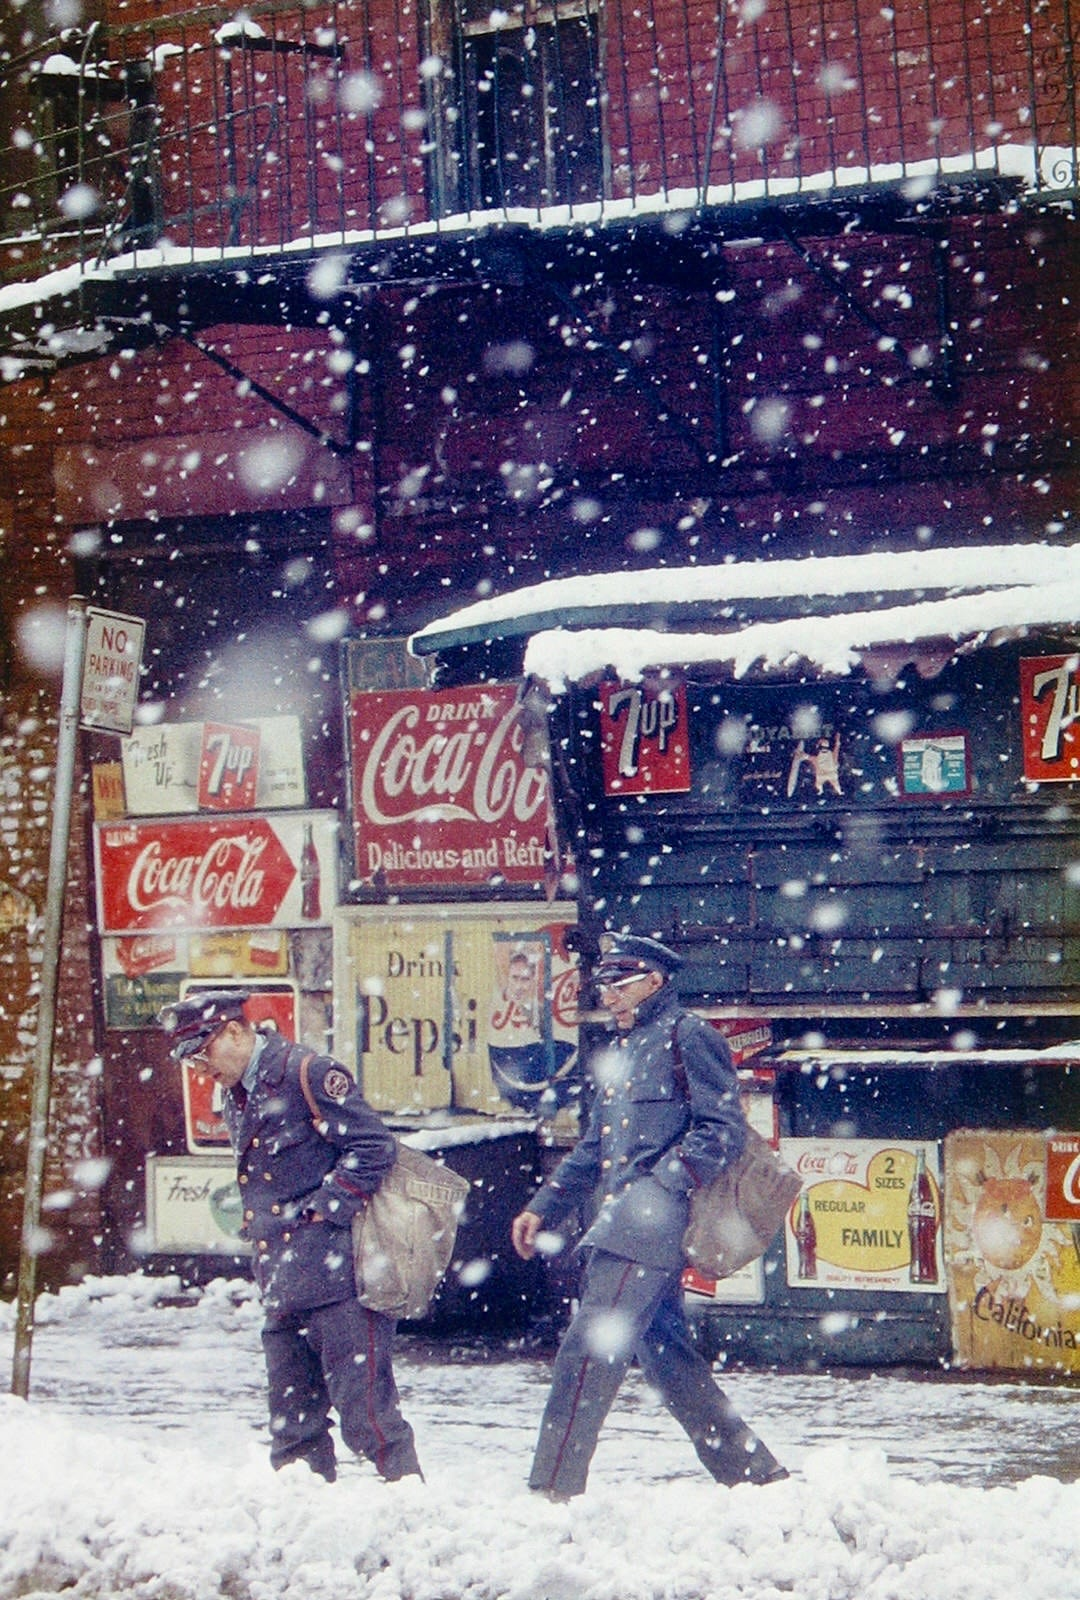 Postmen-1952 Saul-Leiter-Straf-Hat Saul Leiter: Retrospective - The Photographers Gallery, London